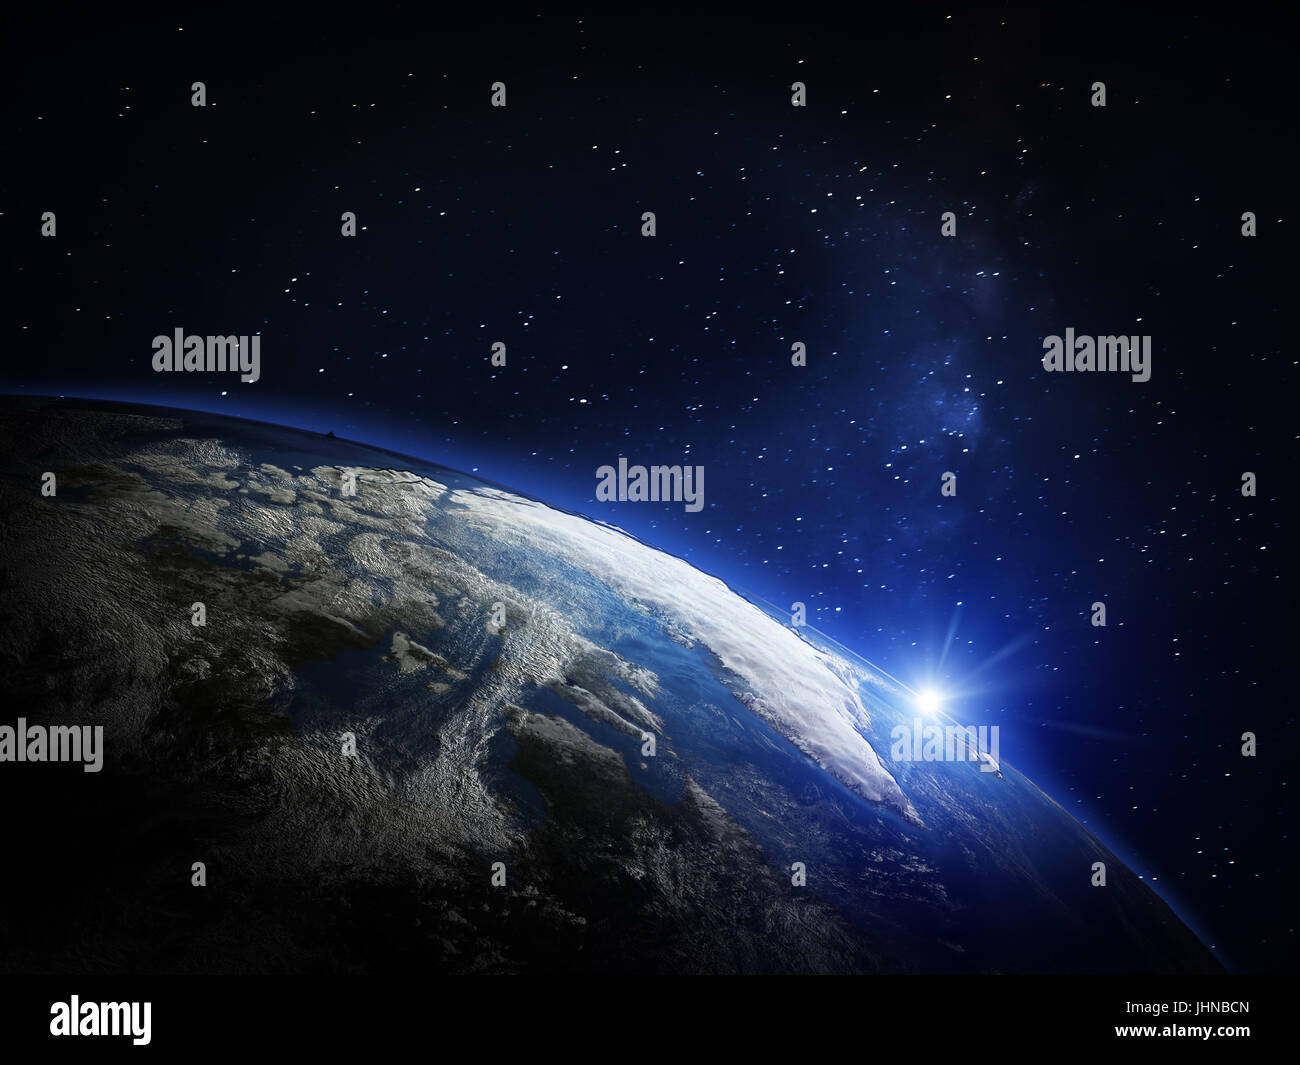 Planet Earth from space - Stock Image